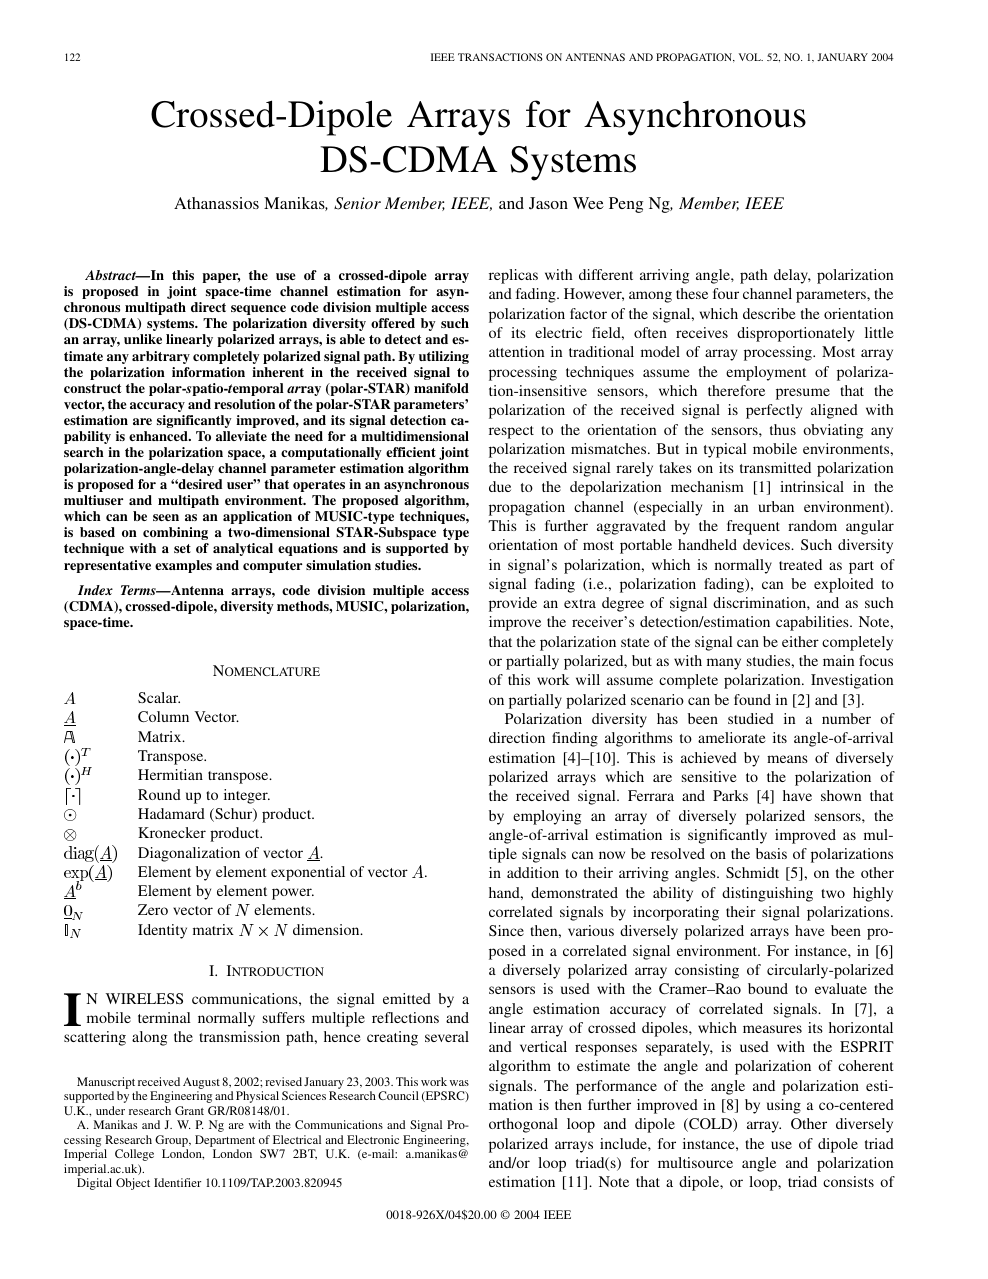 Science computer ieee for pdf papers